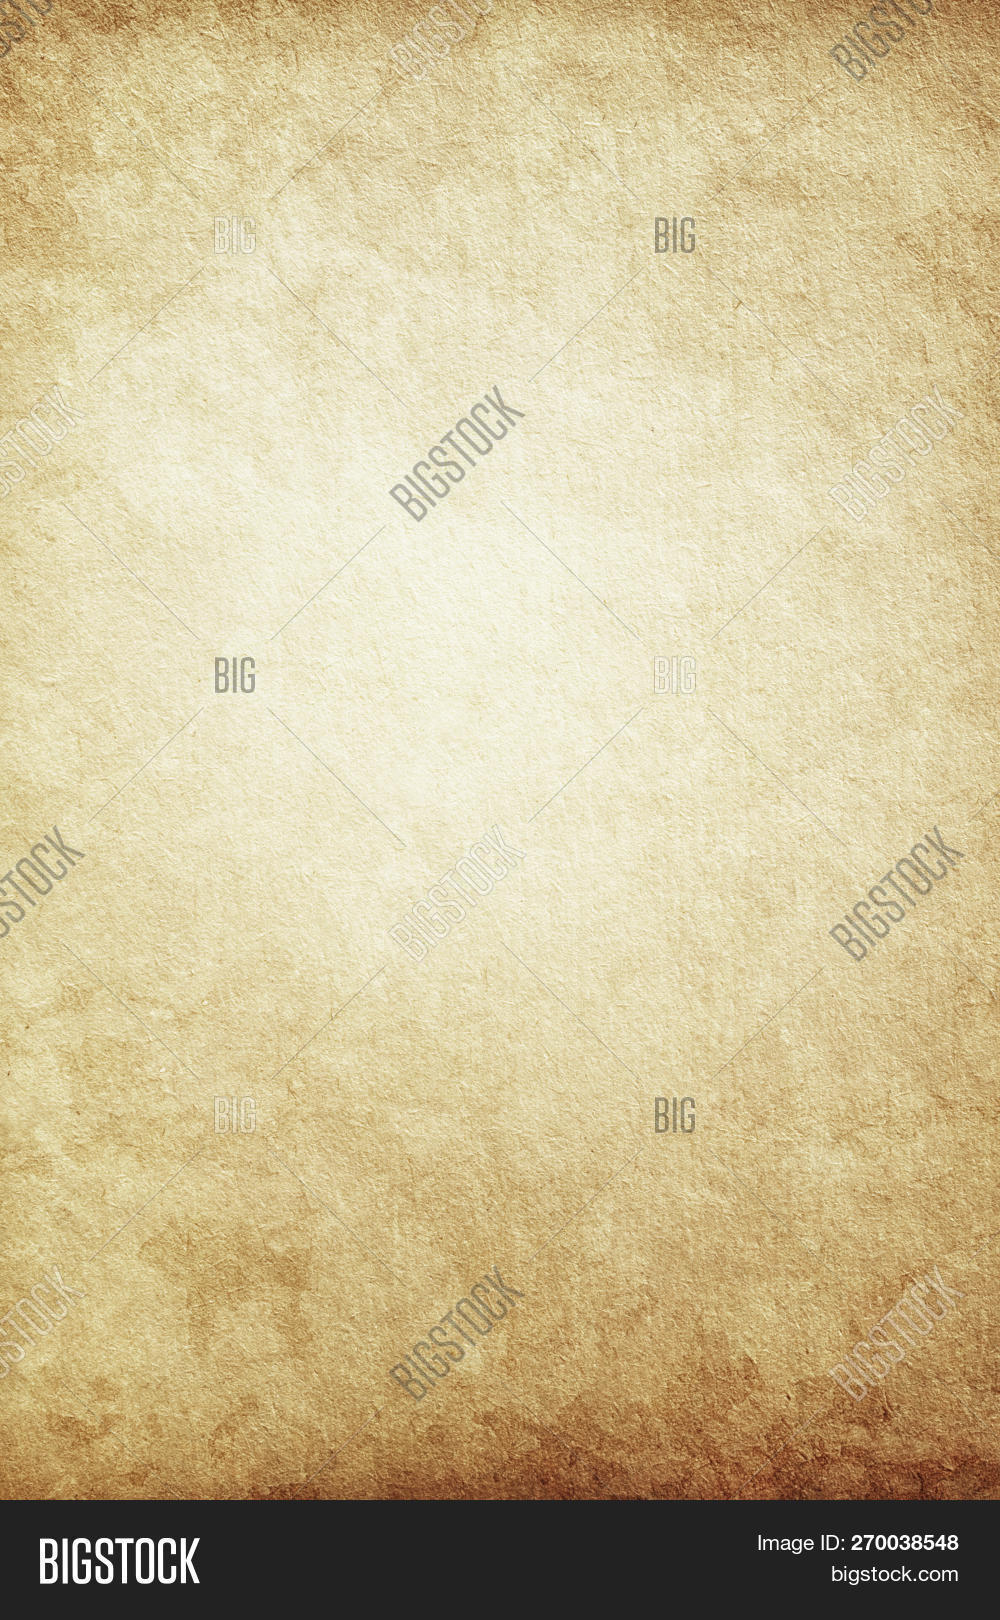 Abstract,Fine,Wallpaper,aged,ancient,antique,art,background,blank,border,brown,crack,crumpled,damaged,decay,design,grunge,lost,material,old,page,paper,parchment,retro,rough,spots,texture,vintage,yellow